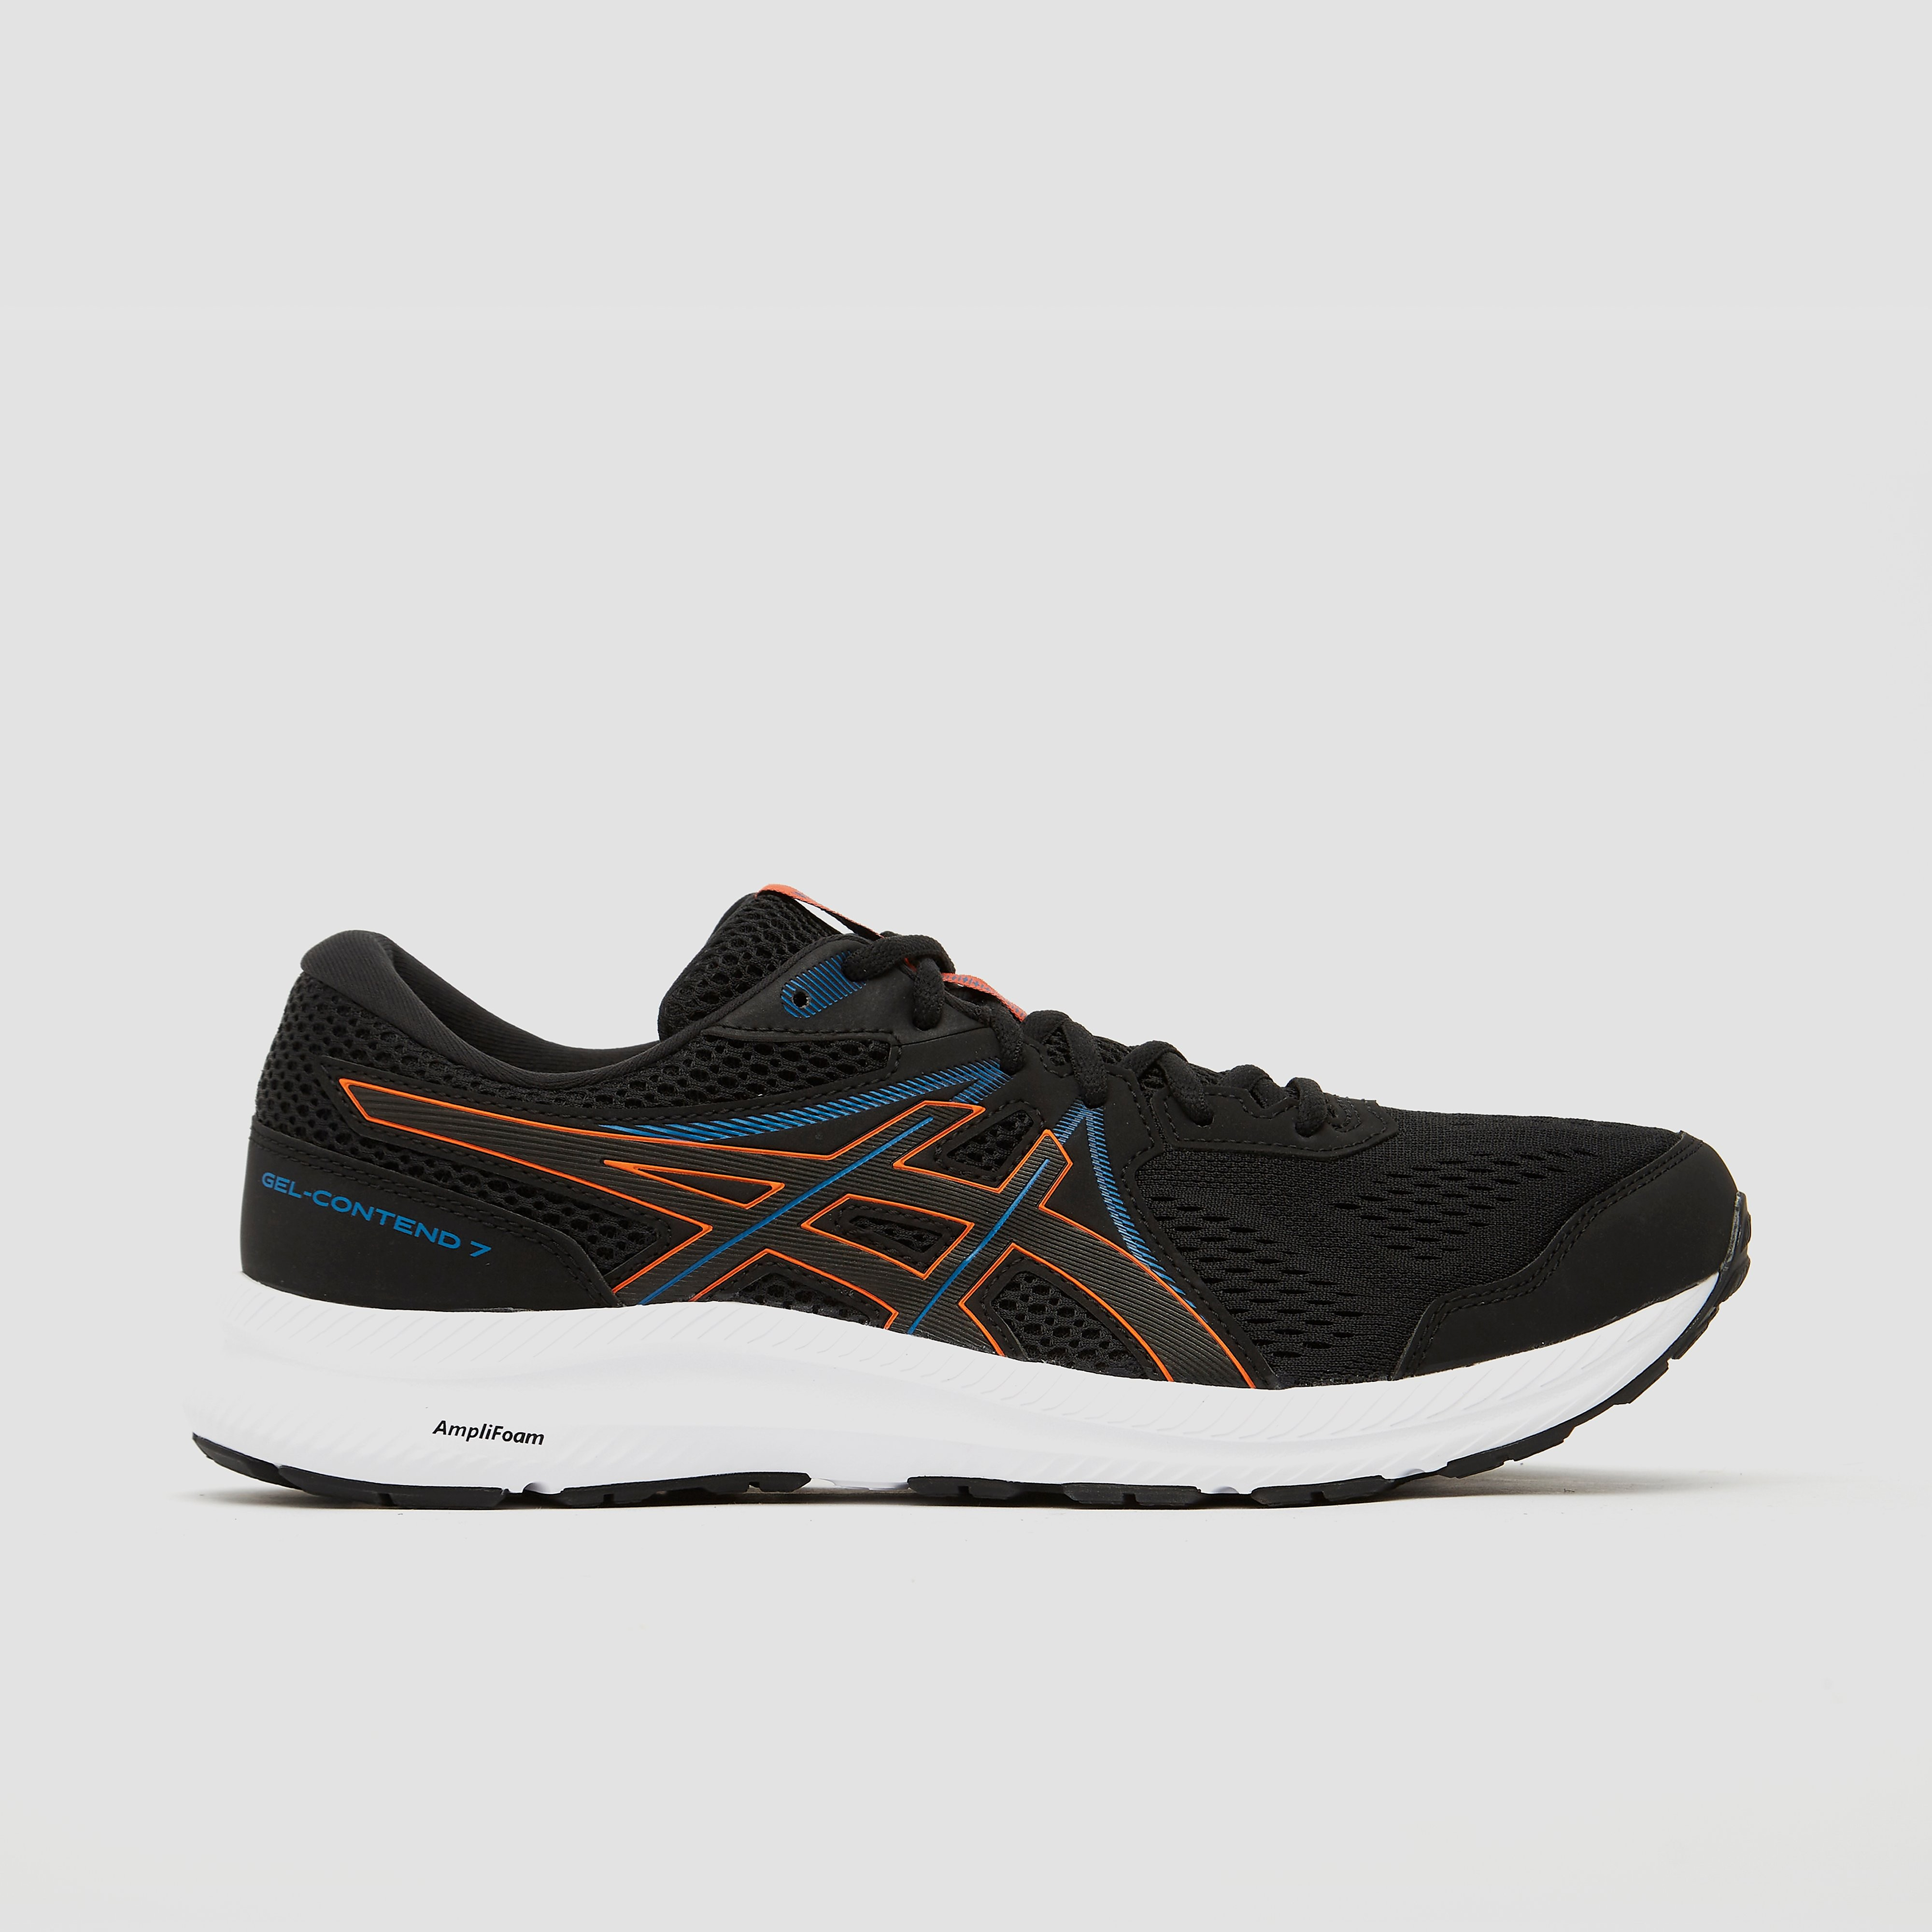 asics runningschoenen GEL-CONTEND 7